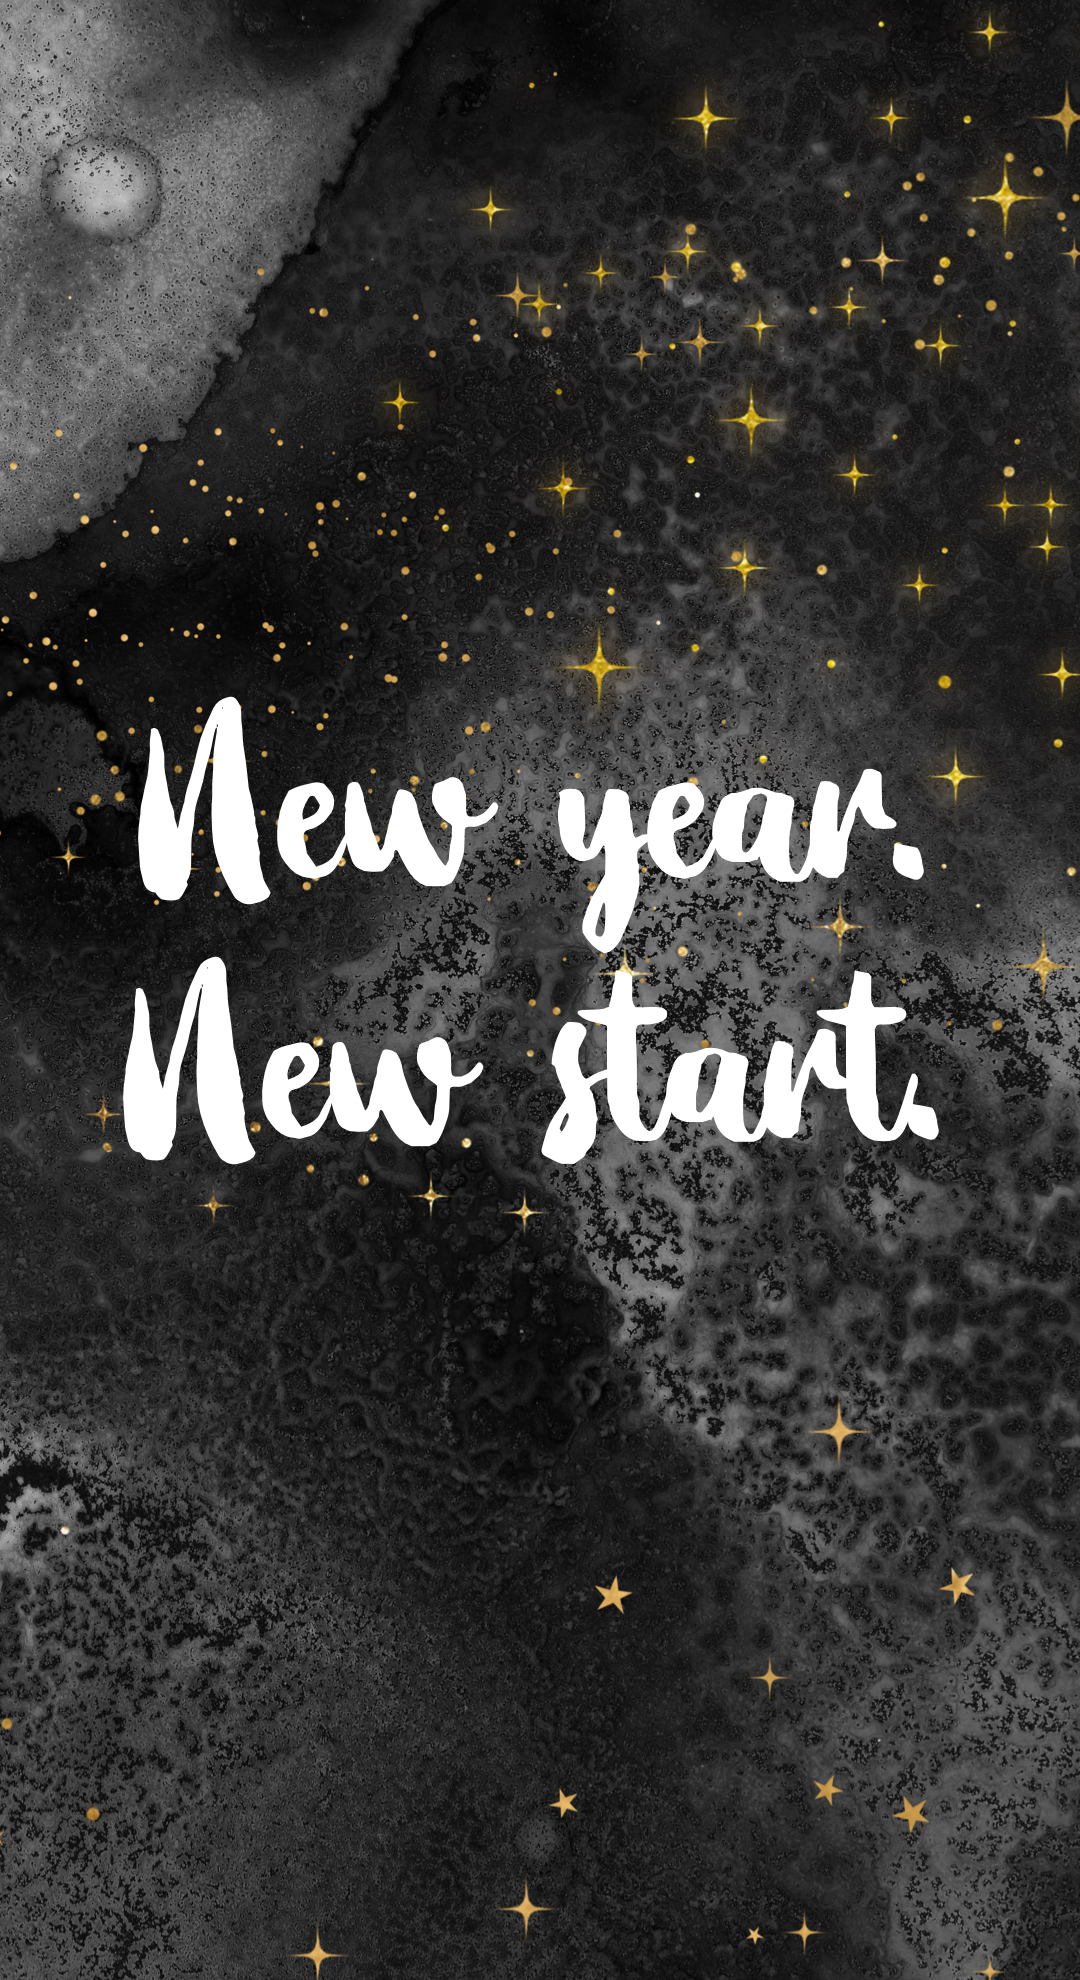 10 Inspiring New Year Quotes For 2022 | Happy New Year!